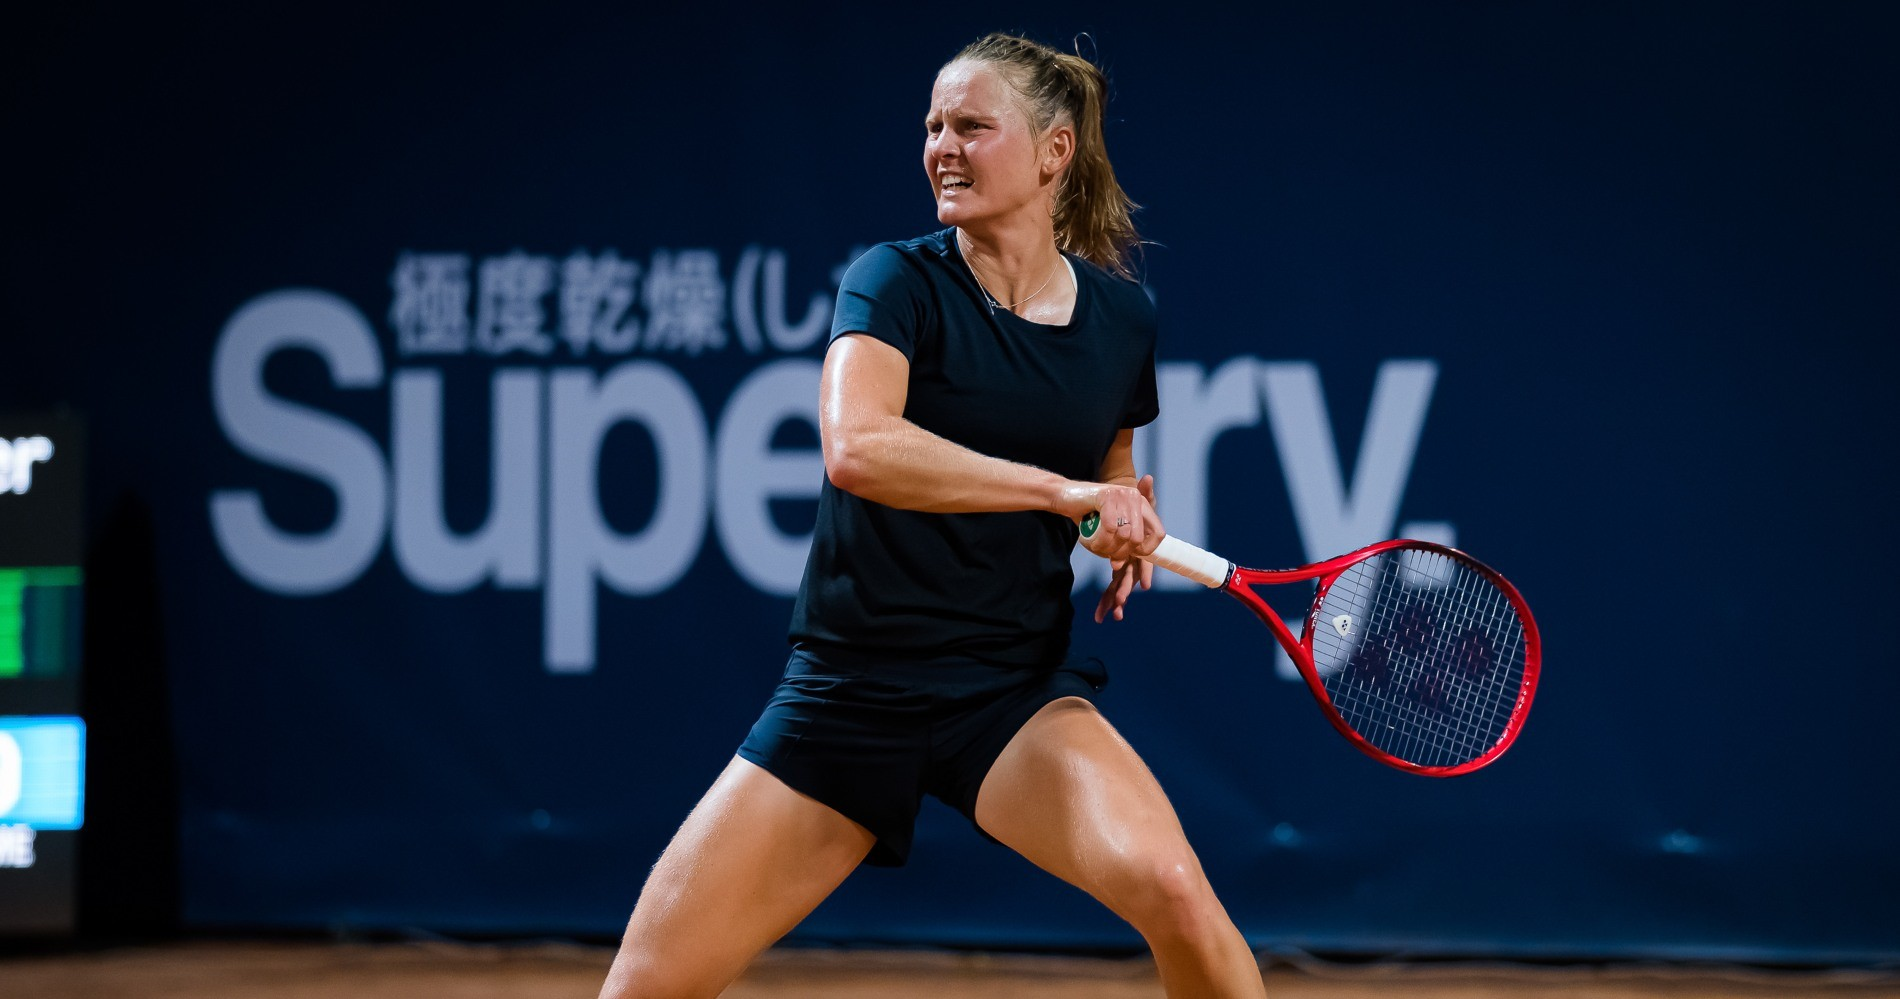 Fiona Ferro of France in action during her quarter-final match against Sara Errani of Italy at the 2020 Palermo Ladies Open WTA International tennis tournament